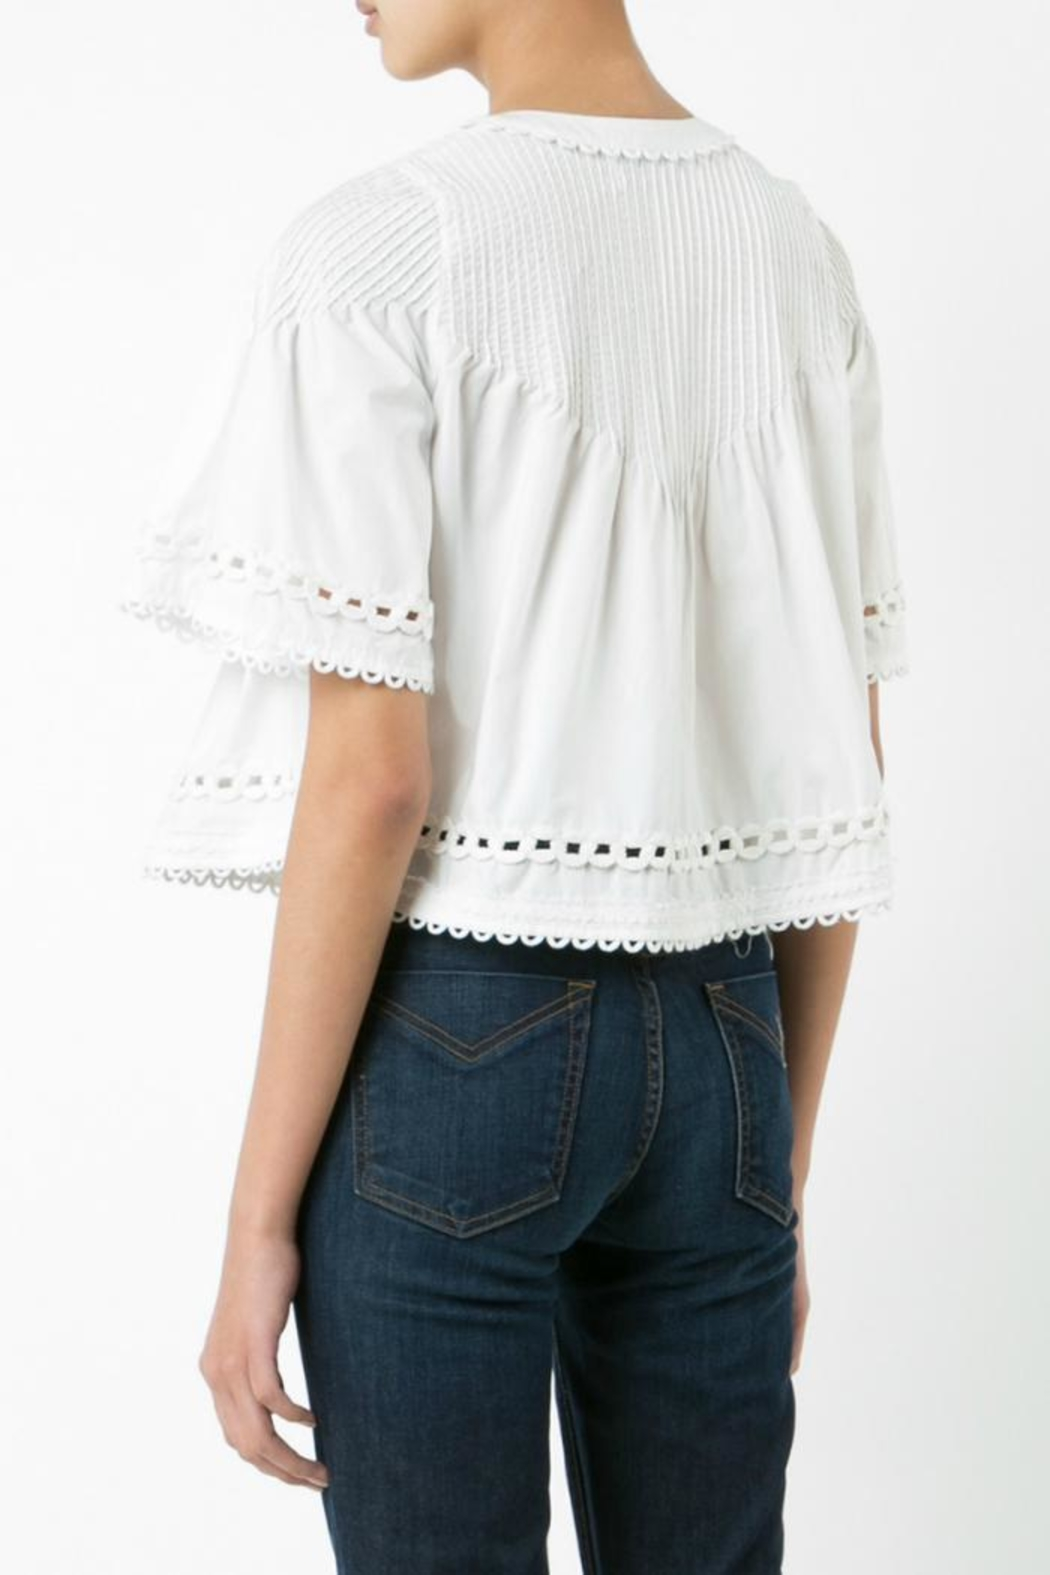 Derek Lam 10 Crosby Embroidered Pintuck Top - Front Full Image